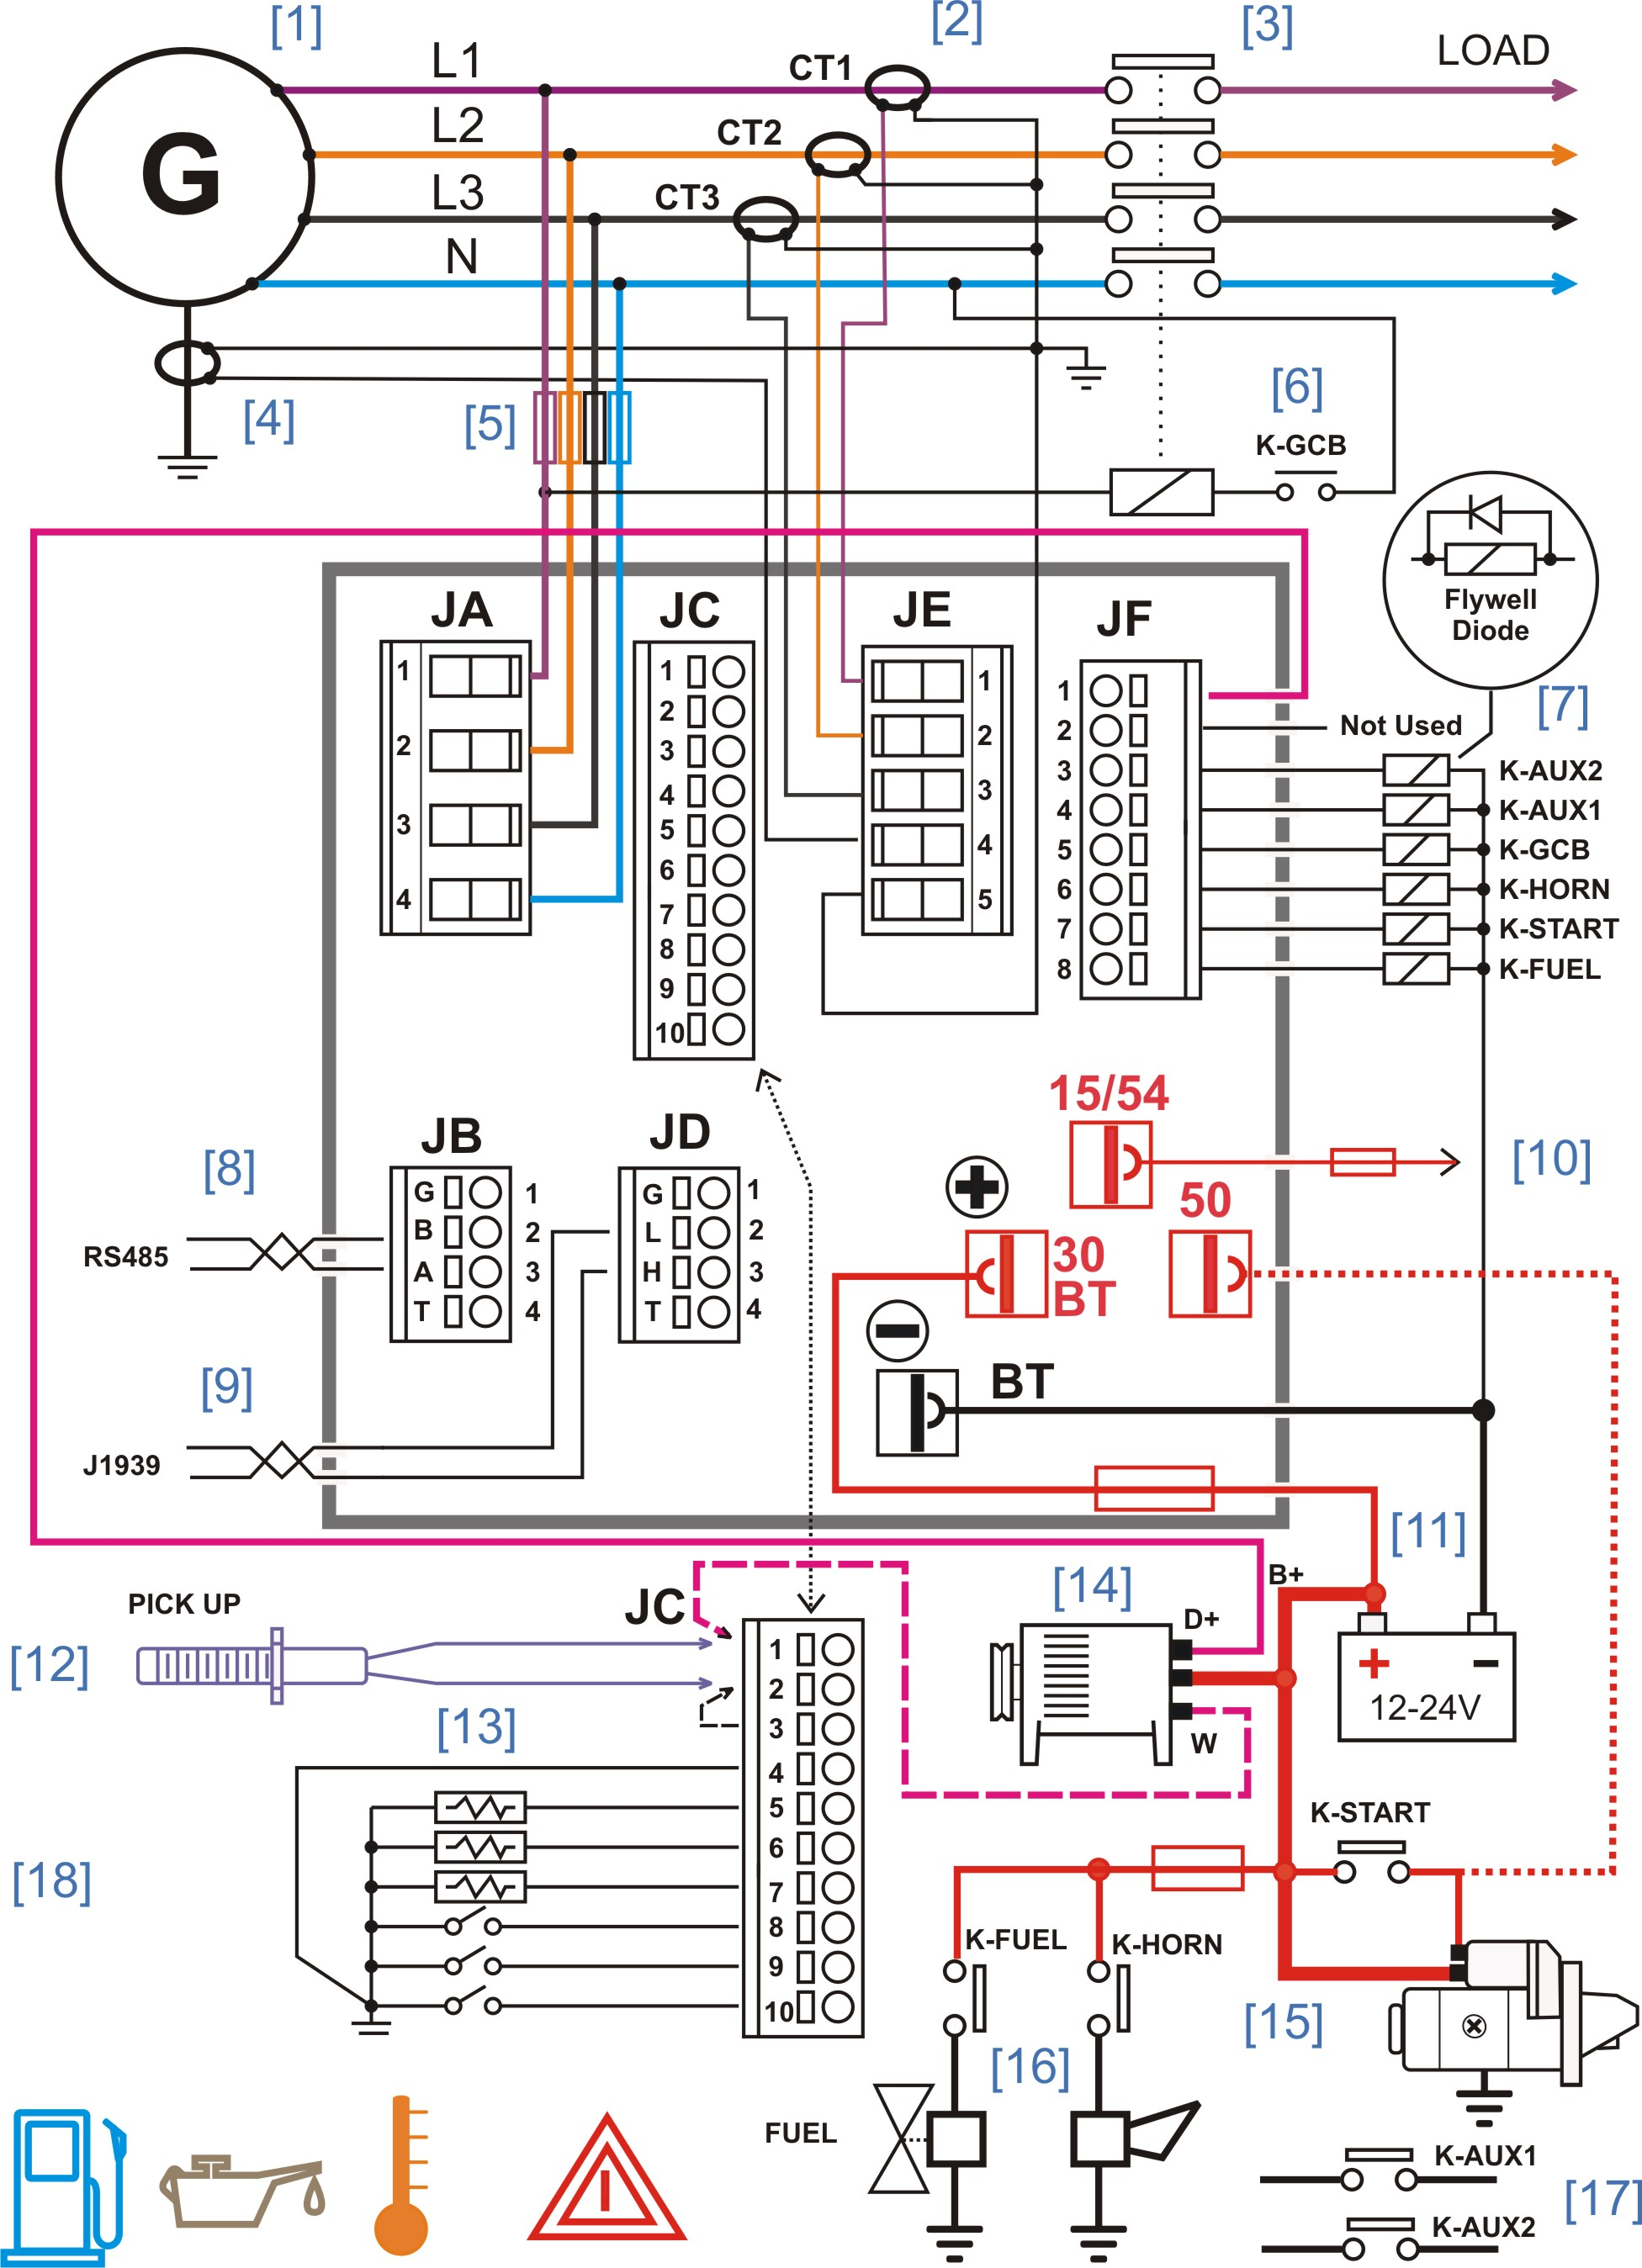 Generator Controller Wiring Diagram generator controller wiring diagram genset controller controller wire diagram for 3246e2 lift at soozxer.org